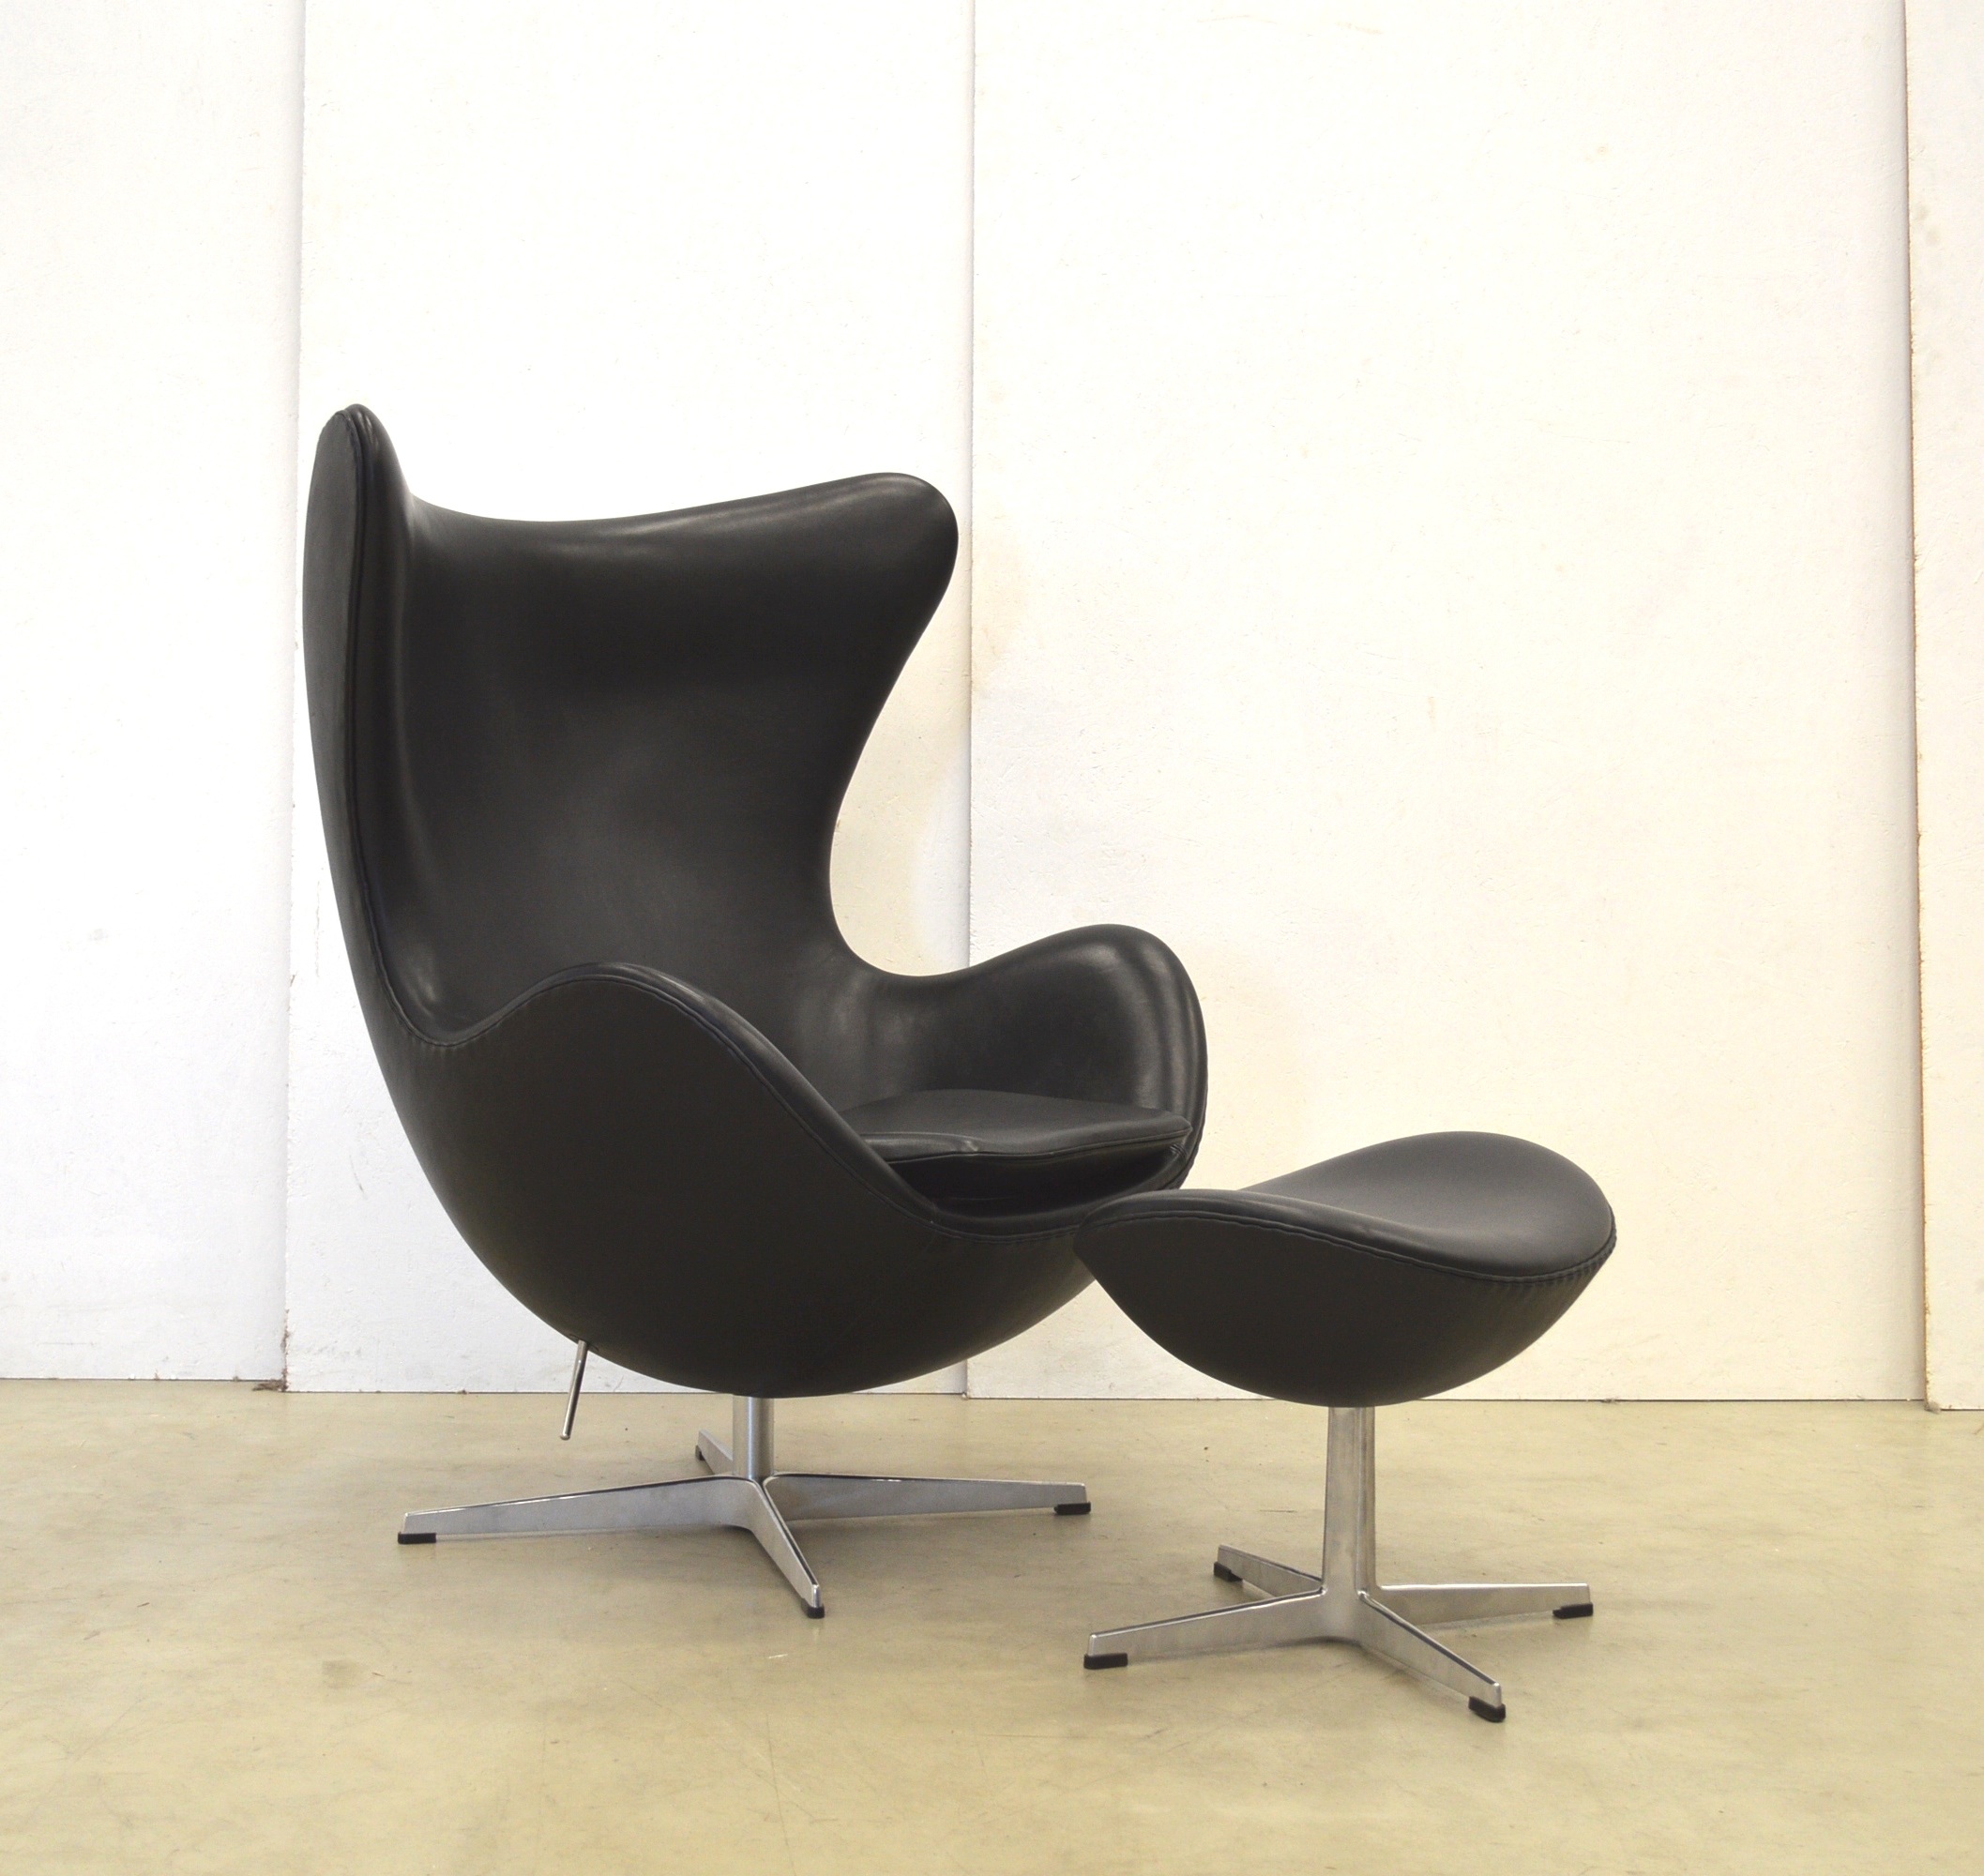 Das Ei Sessel Arne Jacobsen Egg Chair Leder Fritz Hansen Egg Chair In Leder Chocolate